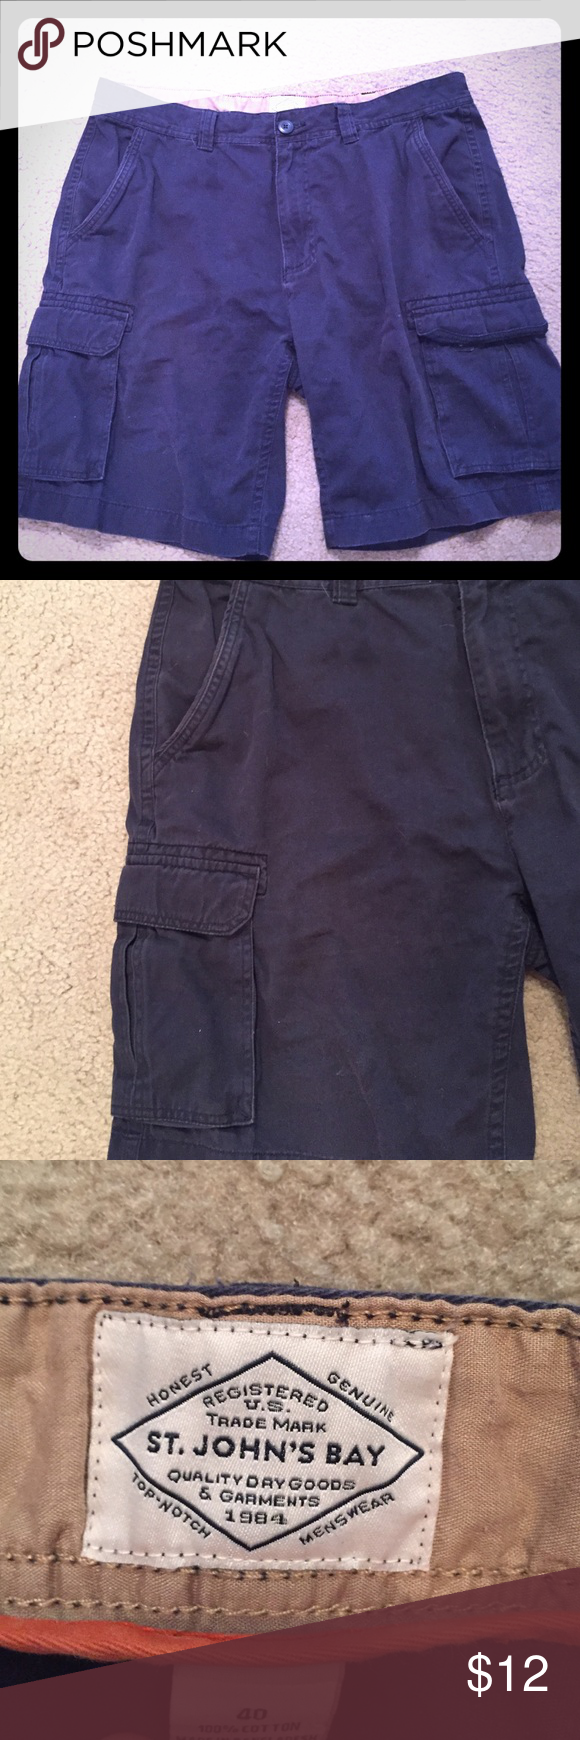 """Navy men's cargo shorts size 40 See pics; great condition no defects 10"""" inseam     Long St. John's Bay Shorts Cargos"""